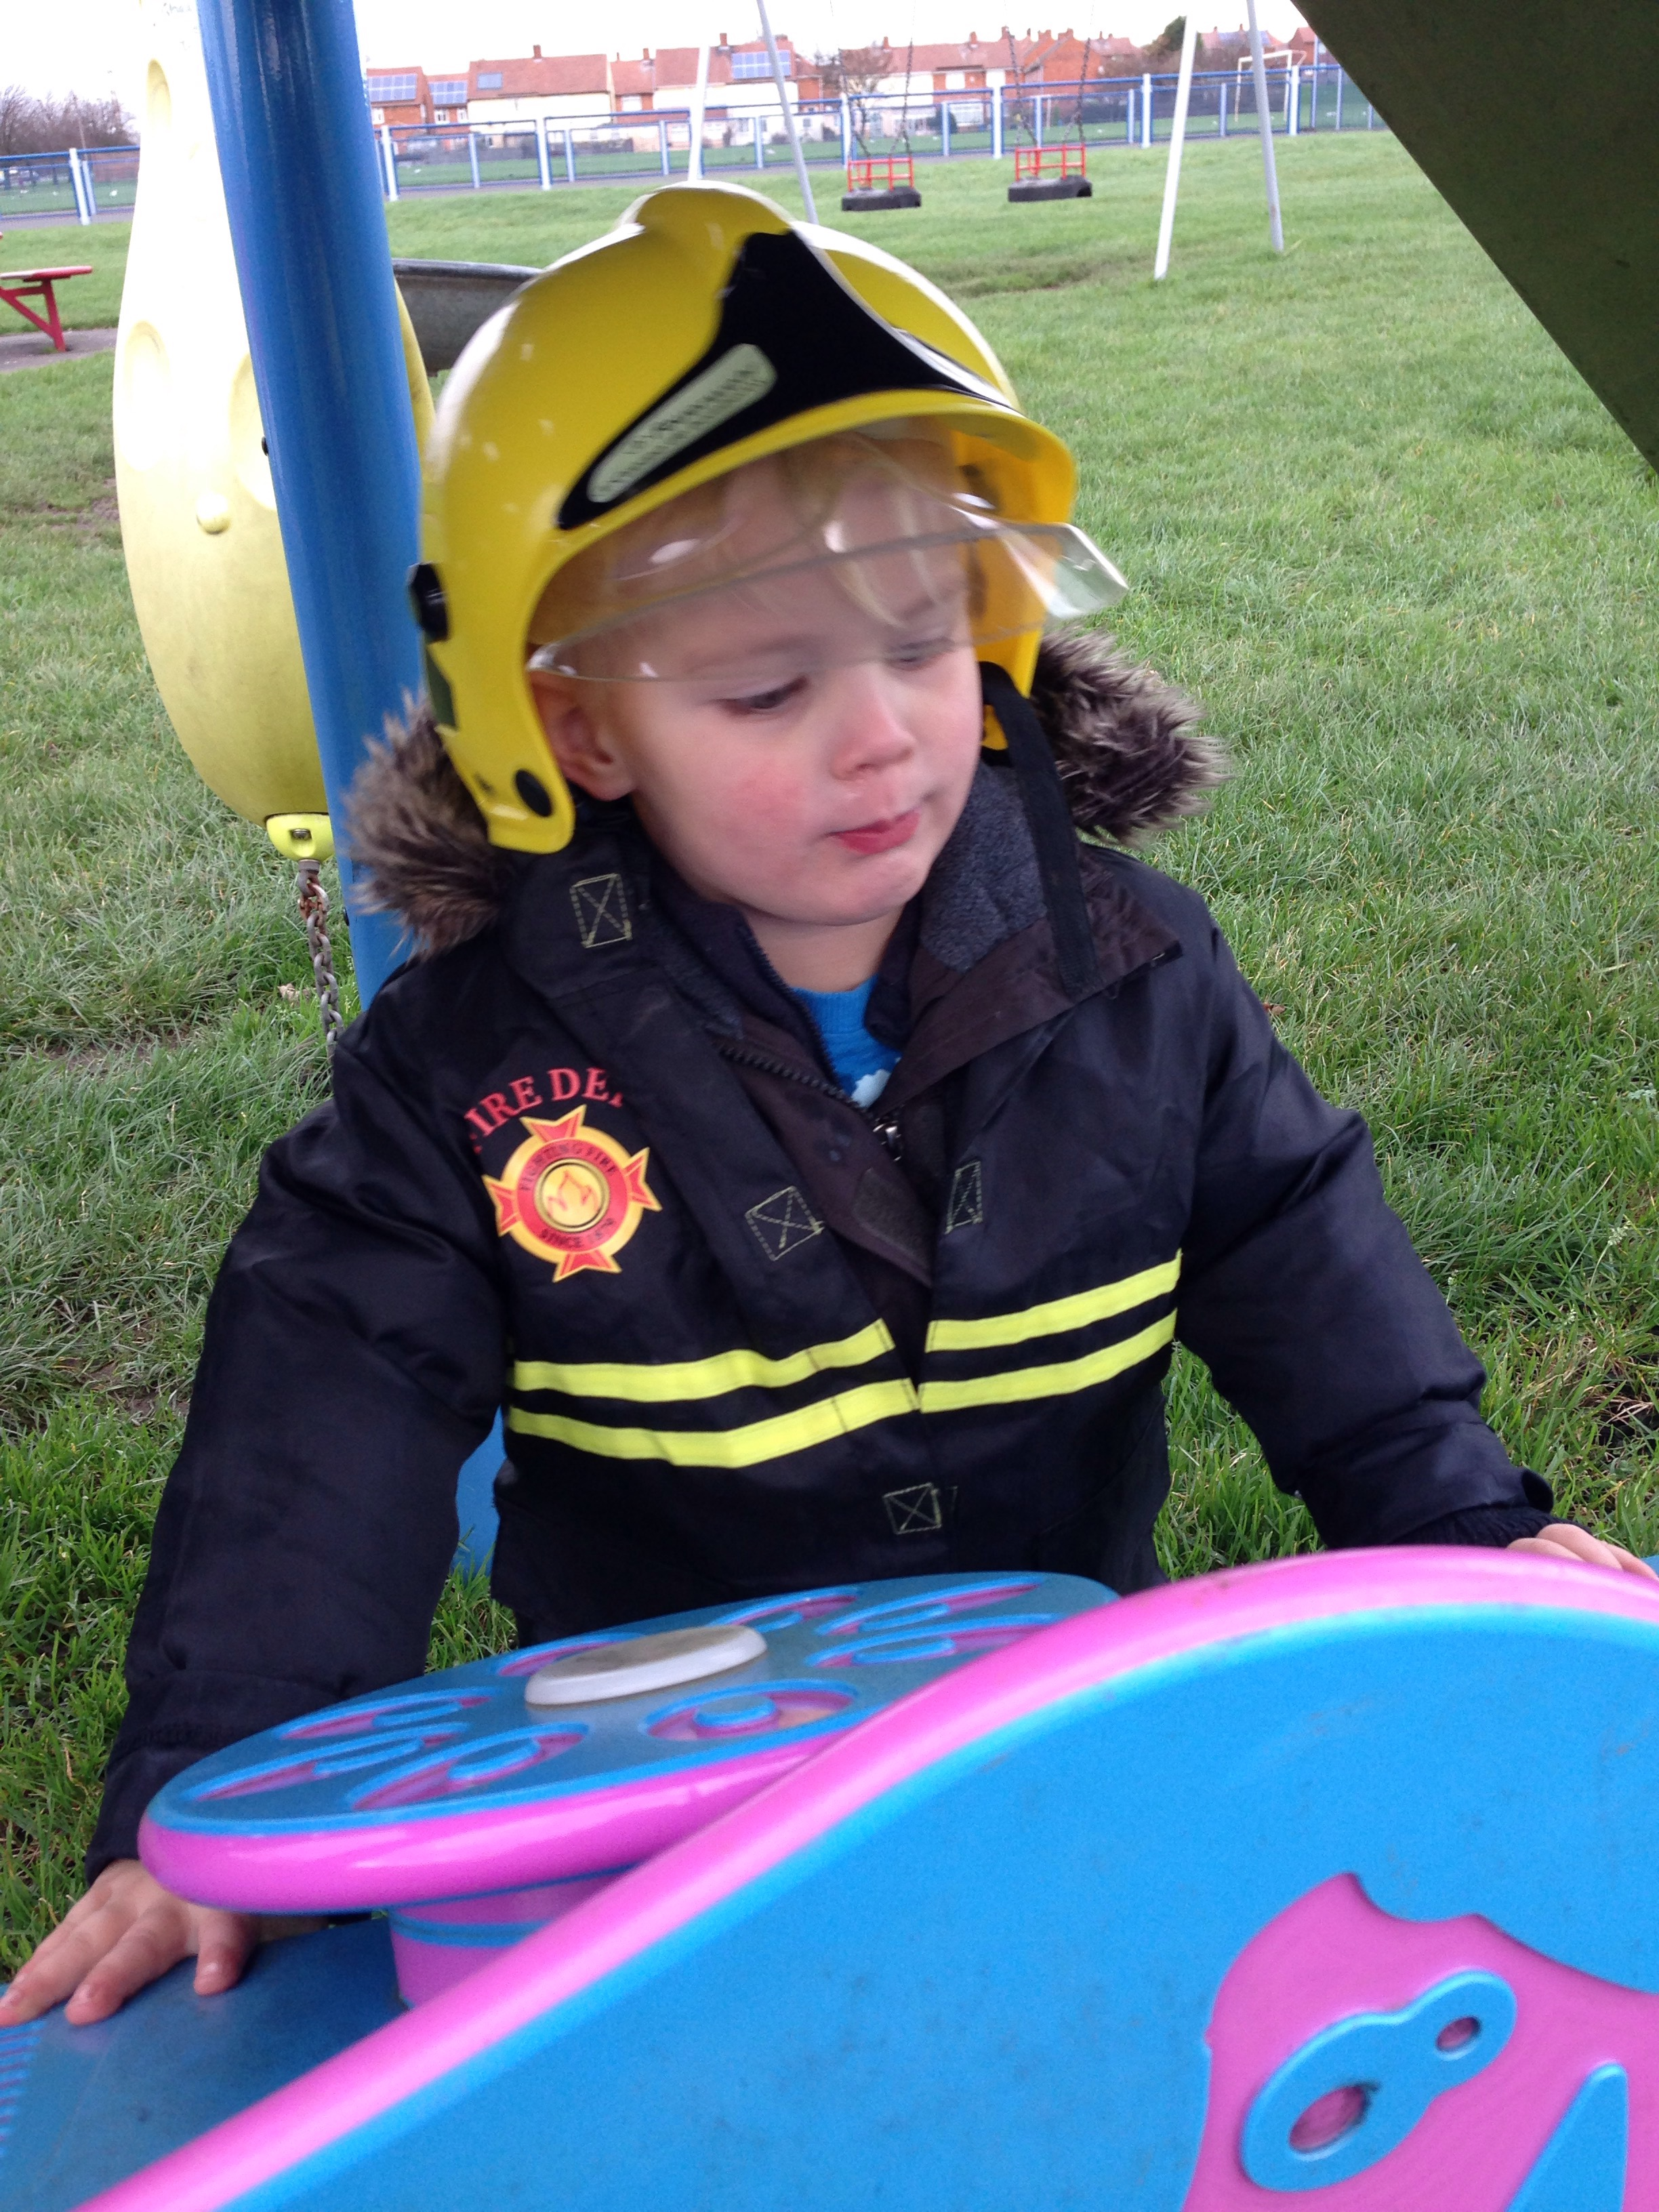 checking out his next mission as a fire fighter